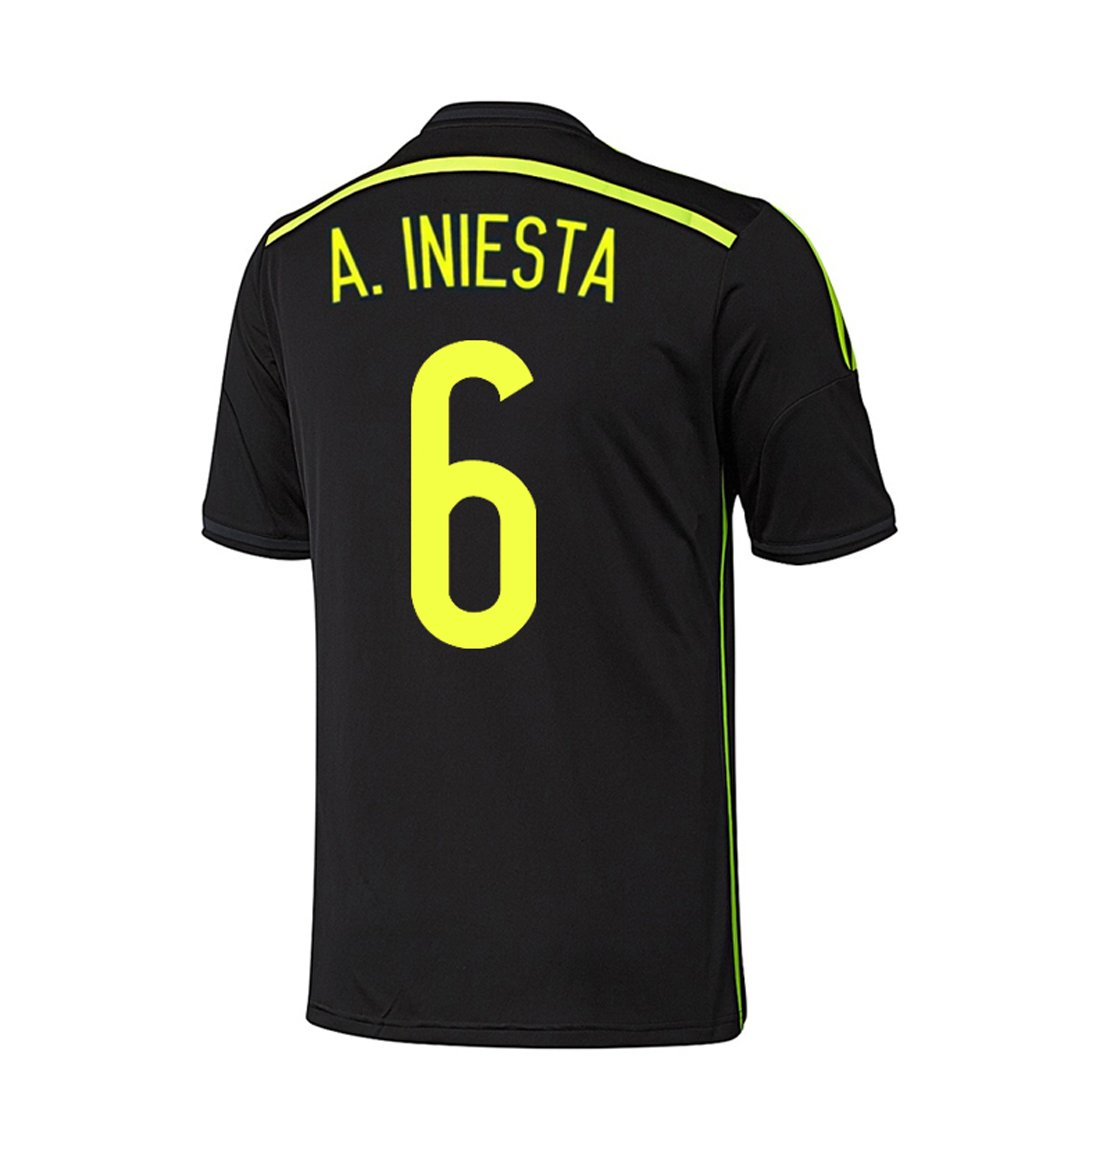 Adidas A. INIESTA #6 Spain Away Jersey World Cup 2014 YOUTH (YS)